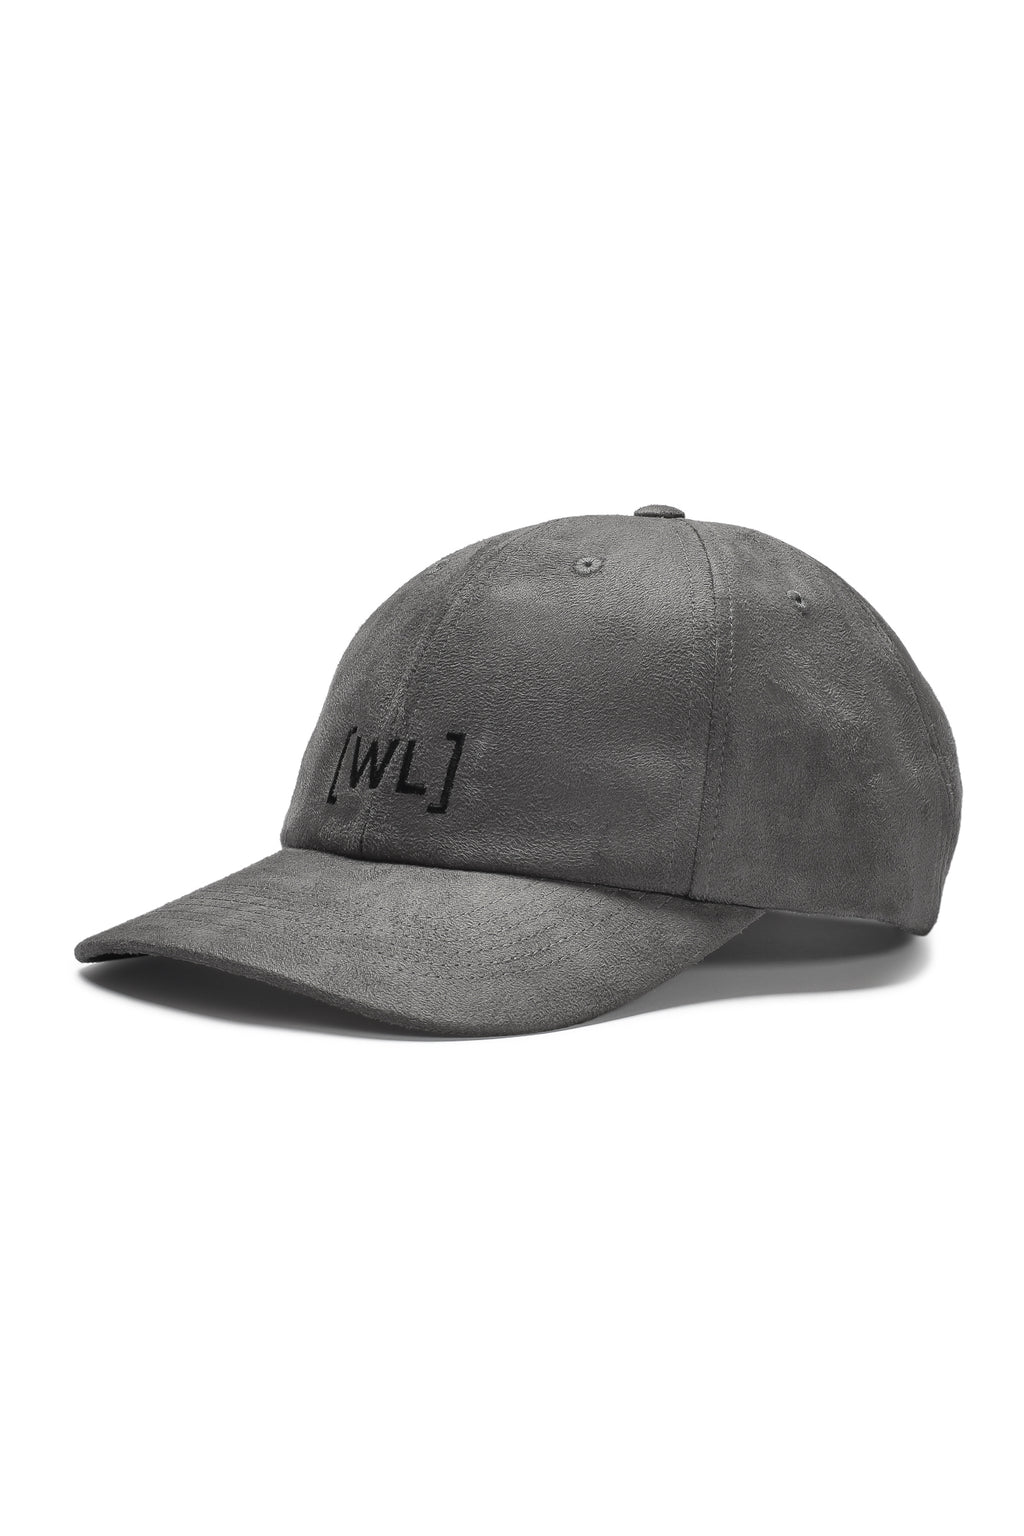 Written Letters Suede Grey Logo Cap Side